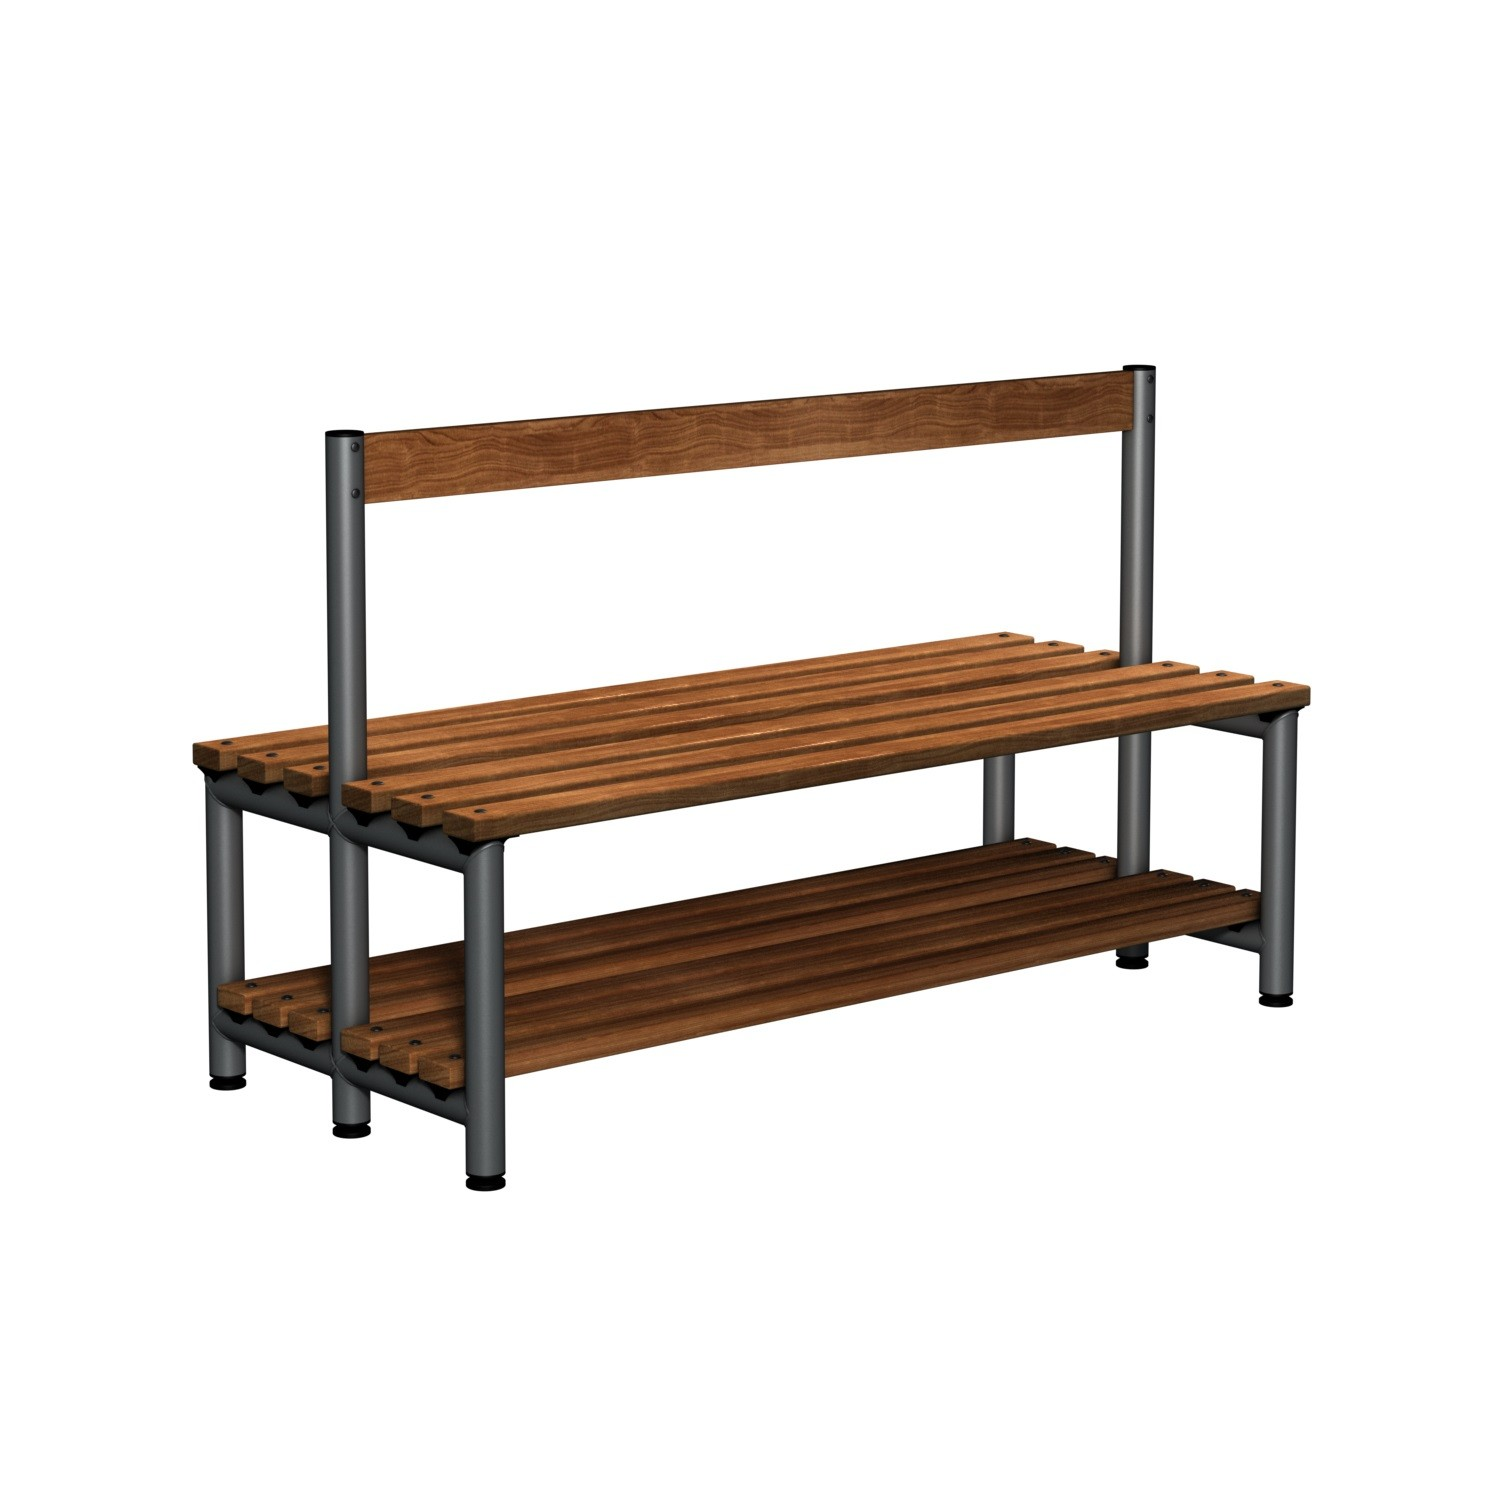 Double Sided Low Seat - Type C